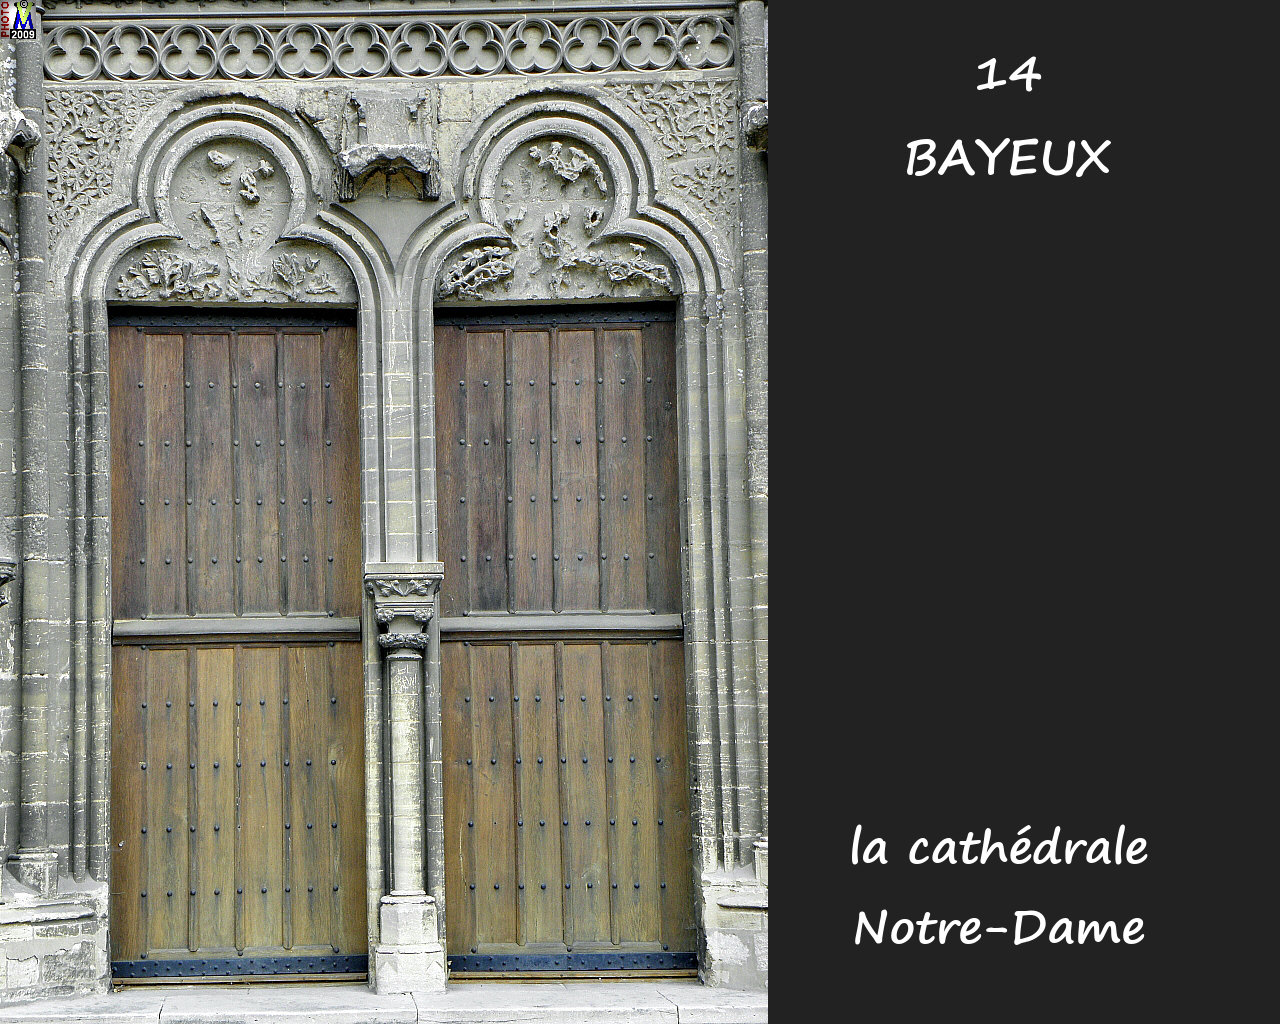 14BAYEUX_cathedrale_126.jpg